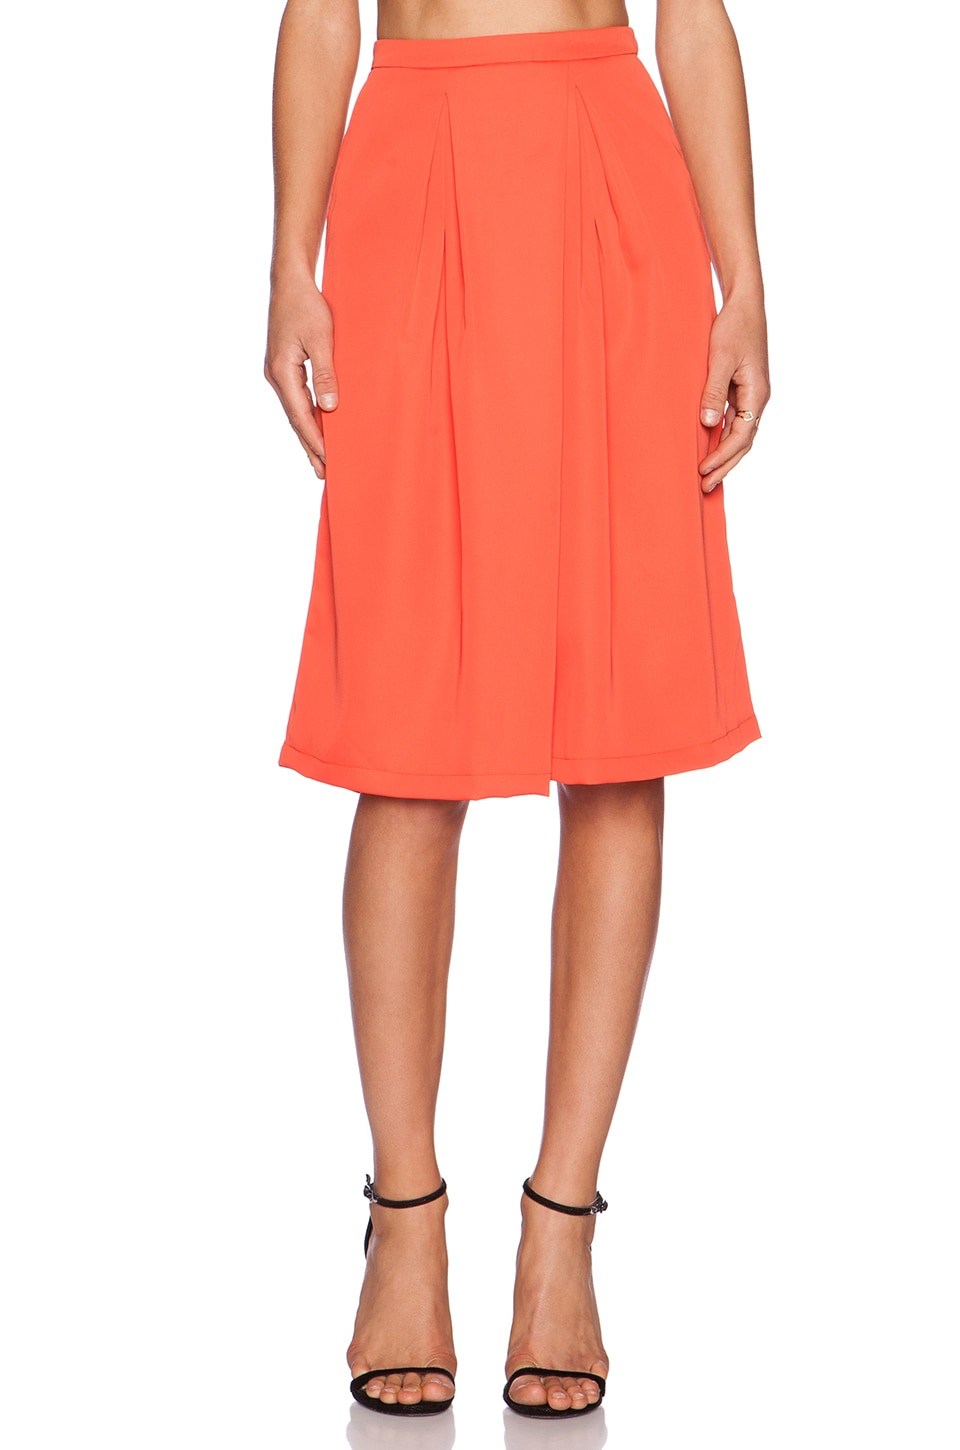 Premonition Melon Me Over Culottes in Melon